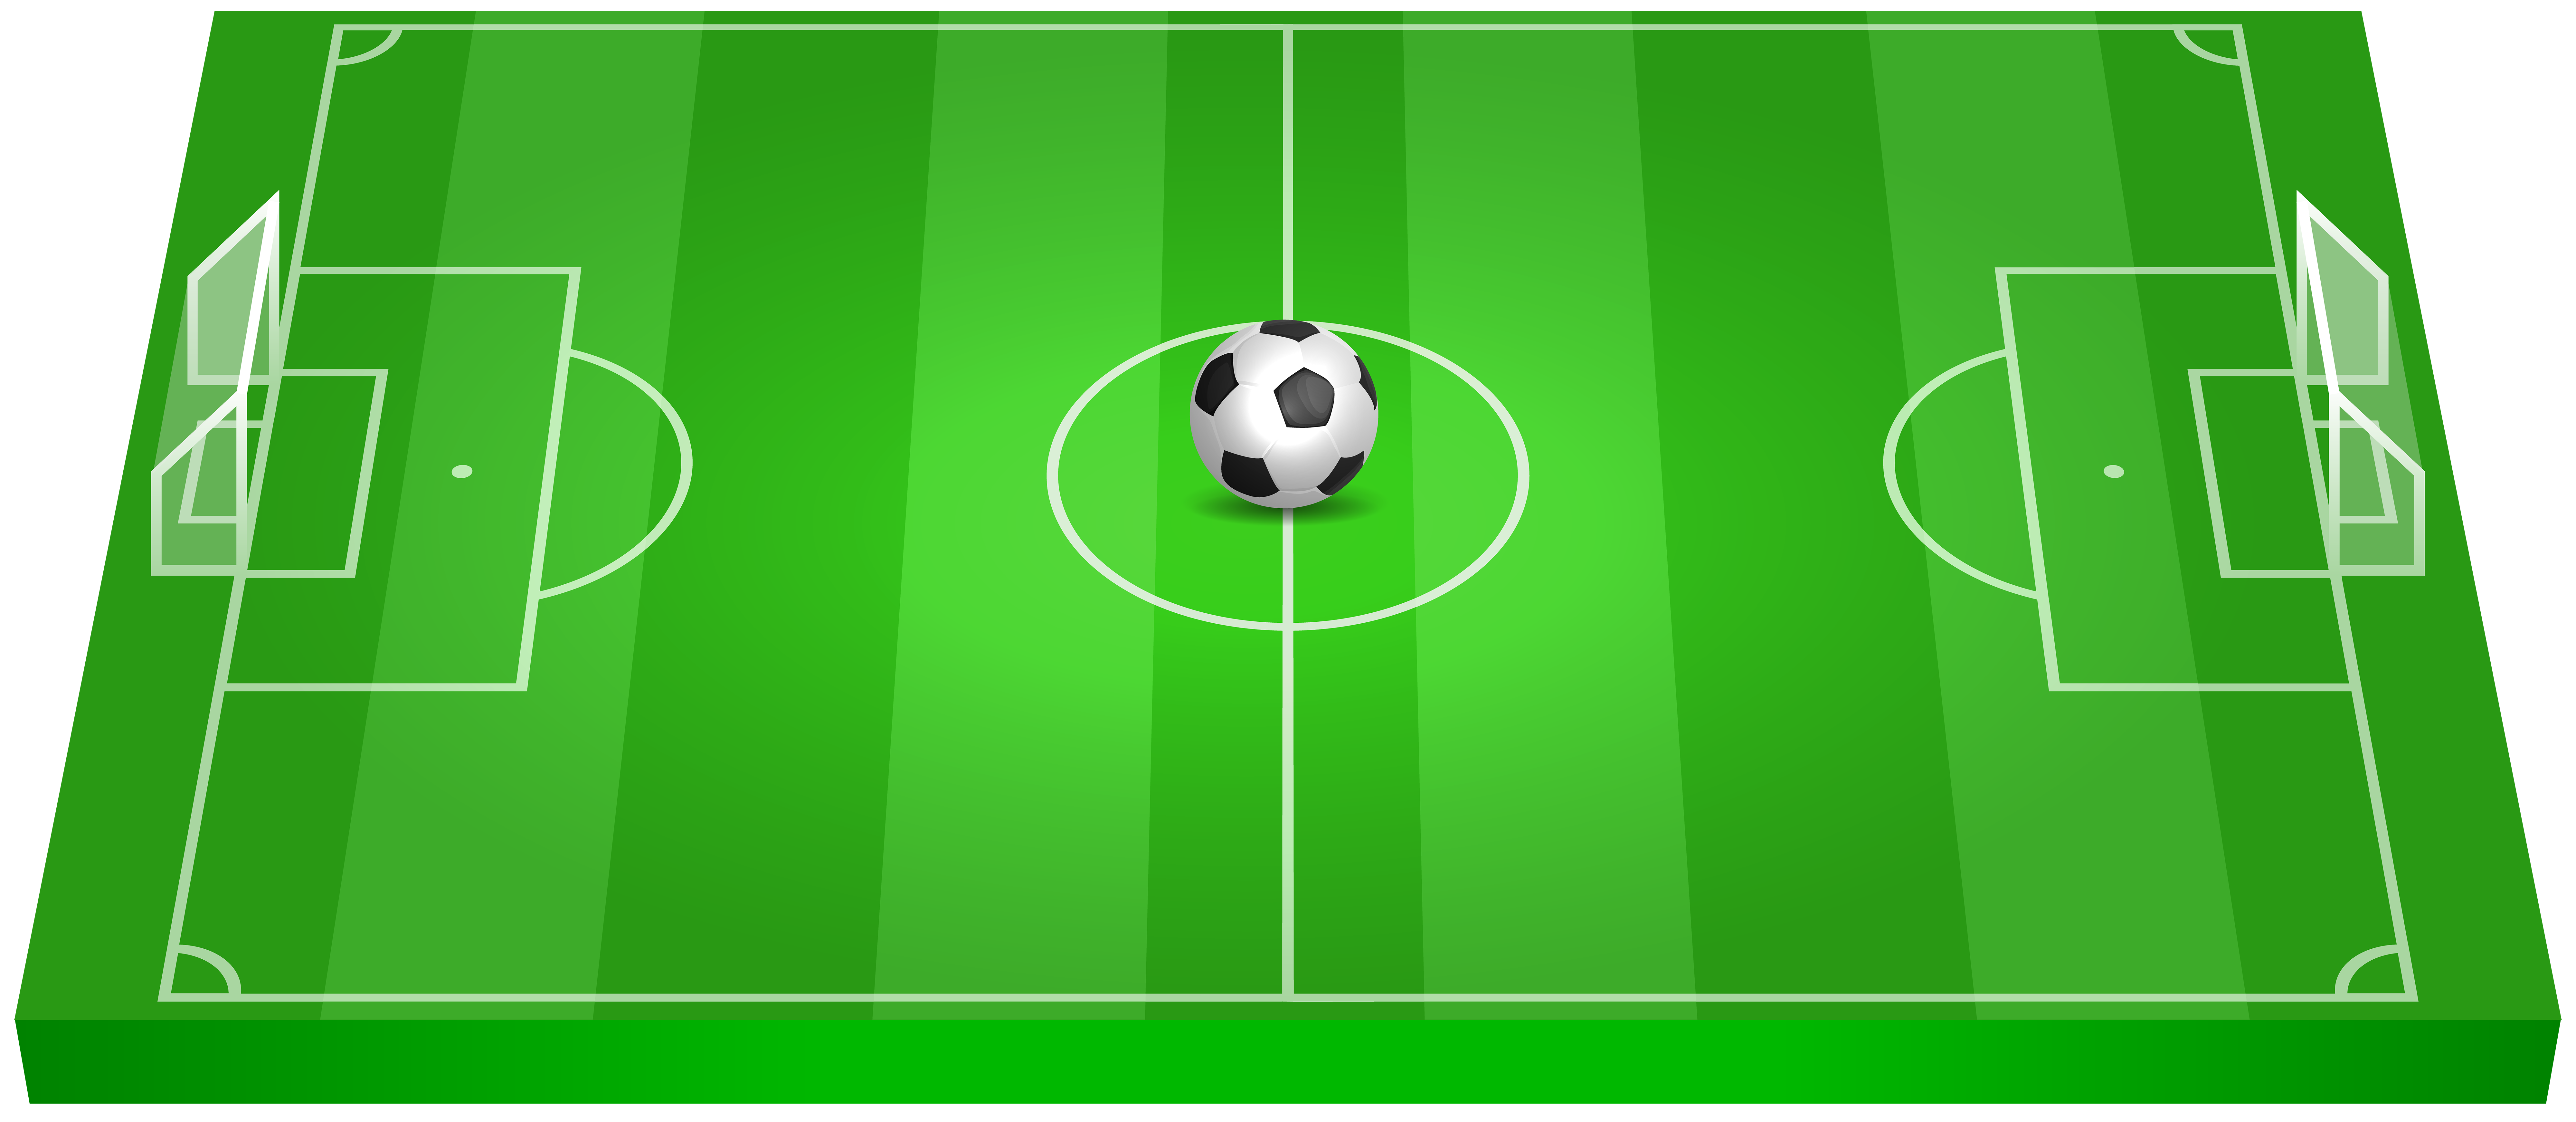 Football field png. Clip art image gallery